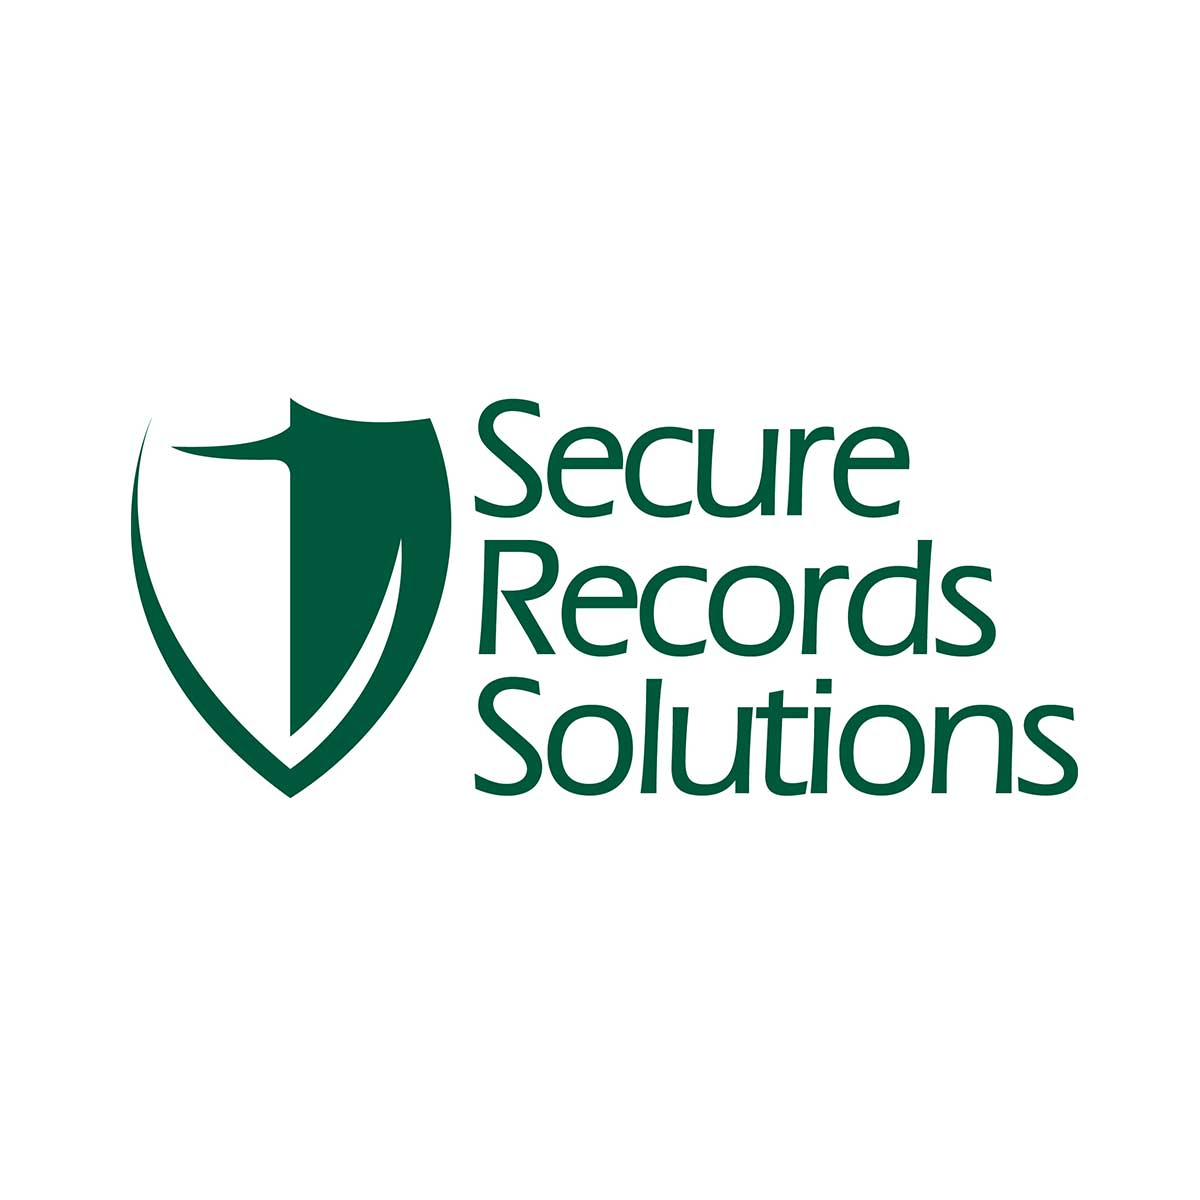 Secure Records Solutions